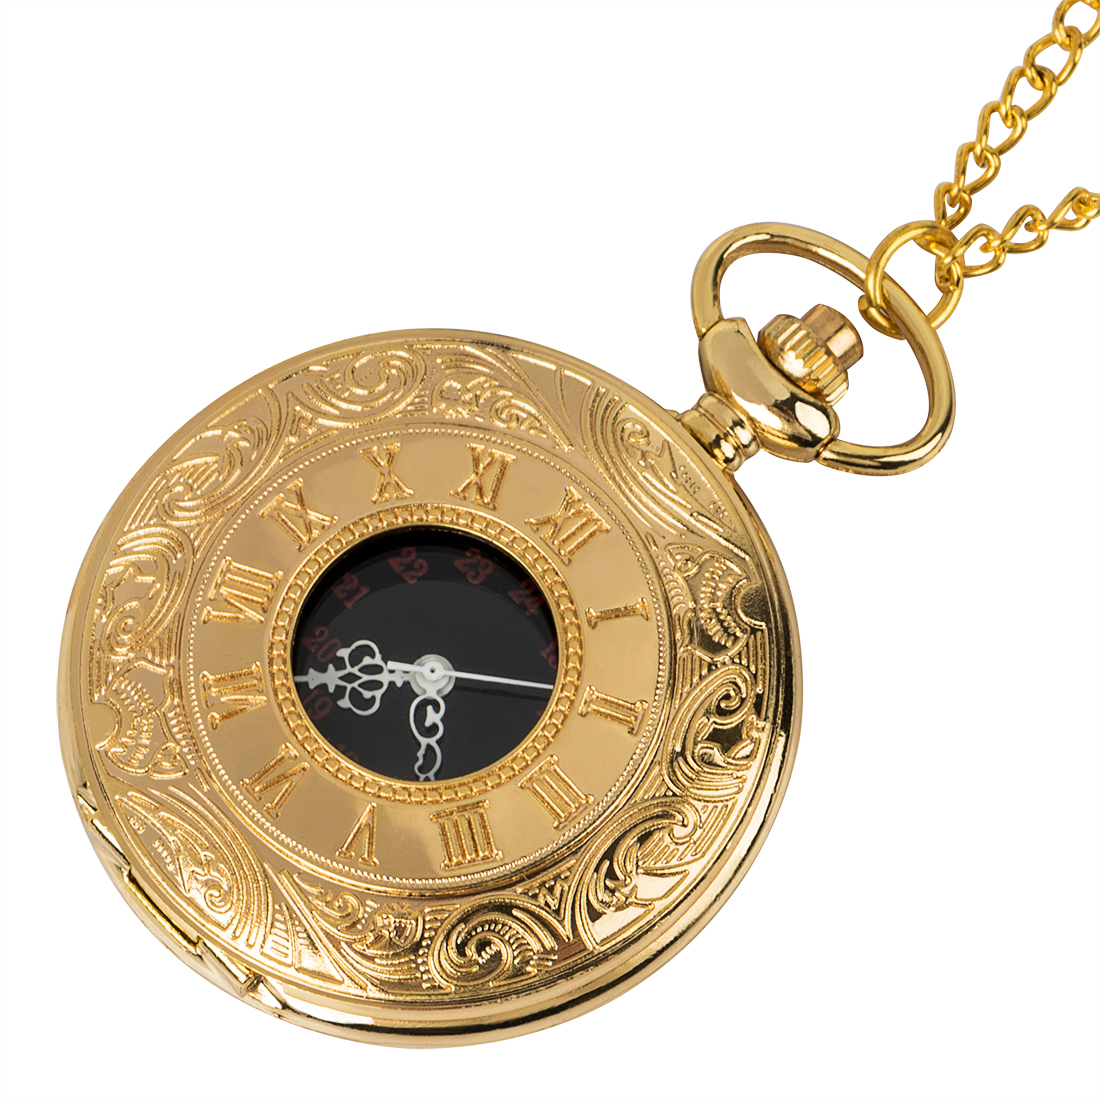 Vintage Golden And Transparent Magnifying Glass Double Open Roman Numerals Steampunk Mechanical Pocket Watches